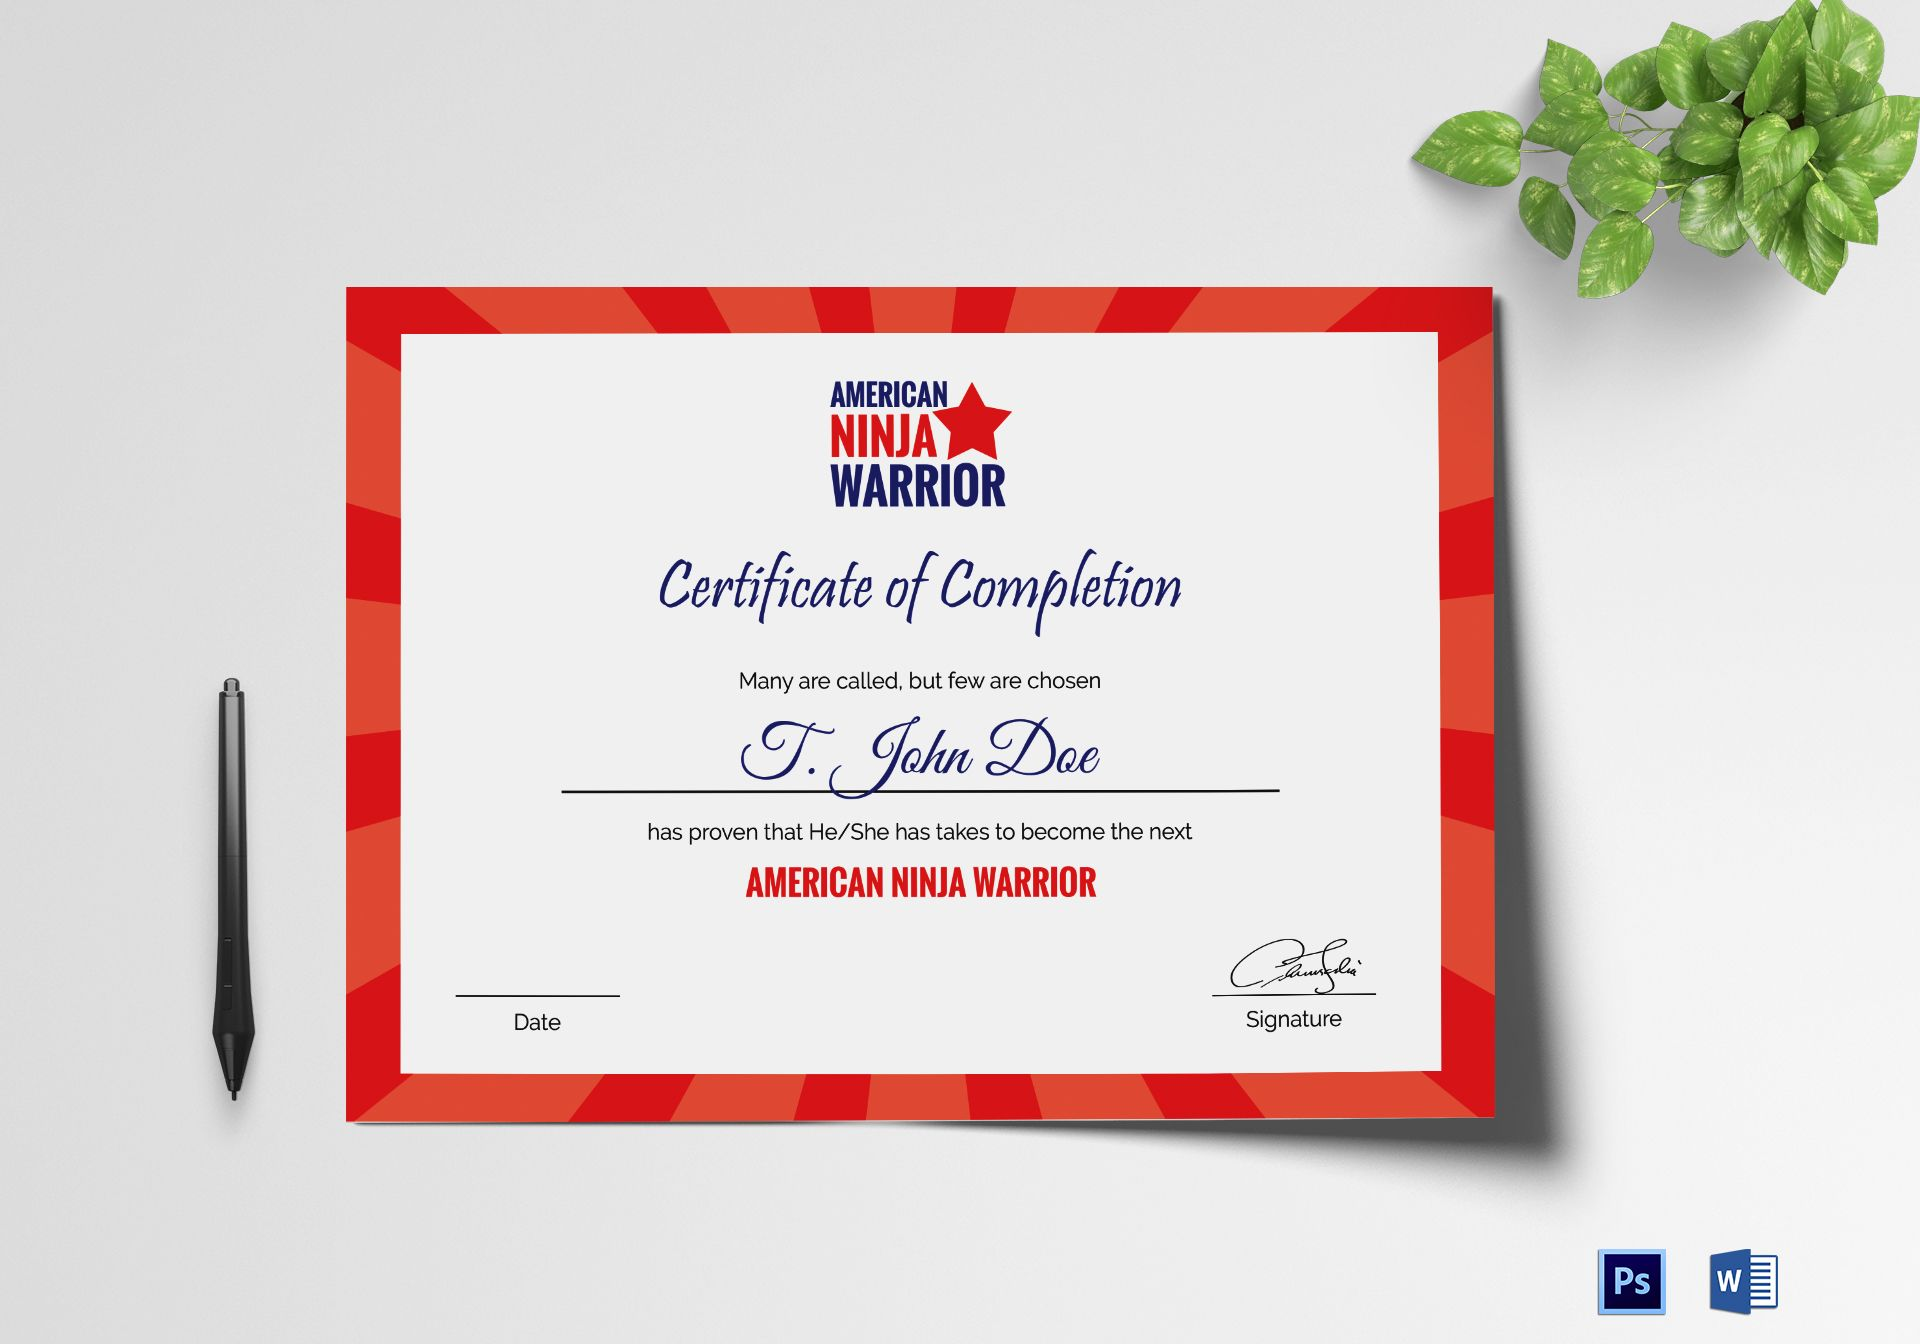 American Ninja Warrior Certificate of Completion